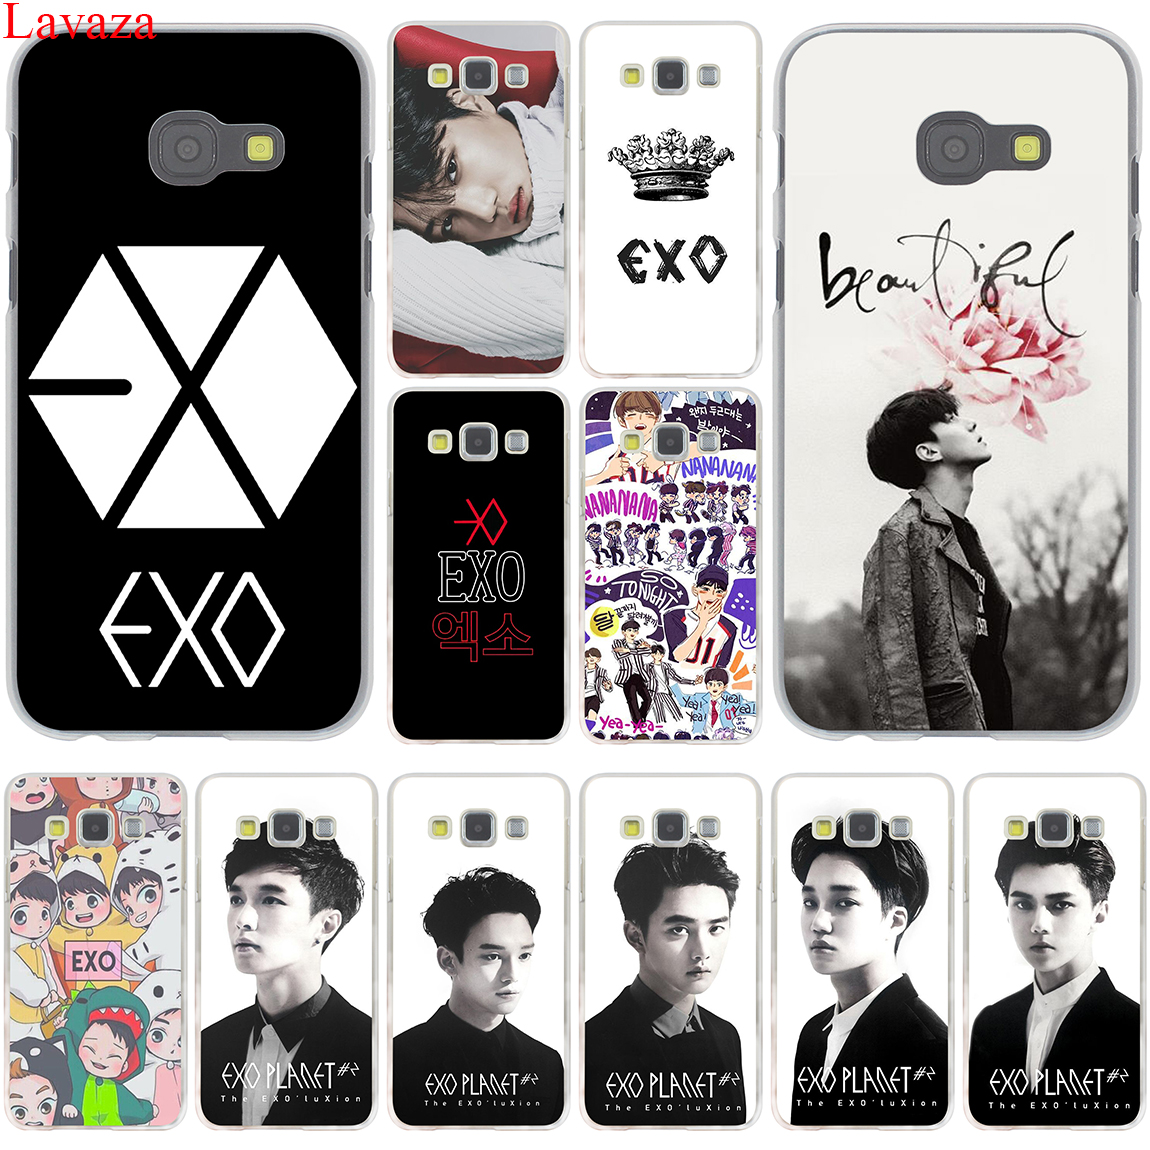 Lavaza Kpop exo Lucky one Hard Case Cover for Samsung Galaxy A3 A5 J3 J5 J7 2015 2016 2017